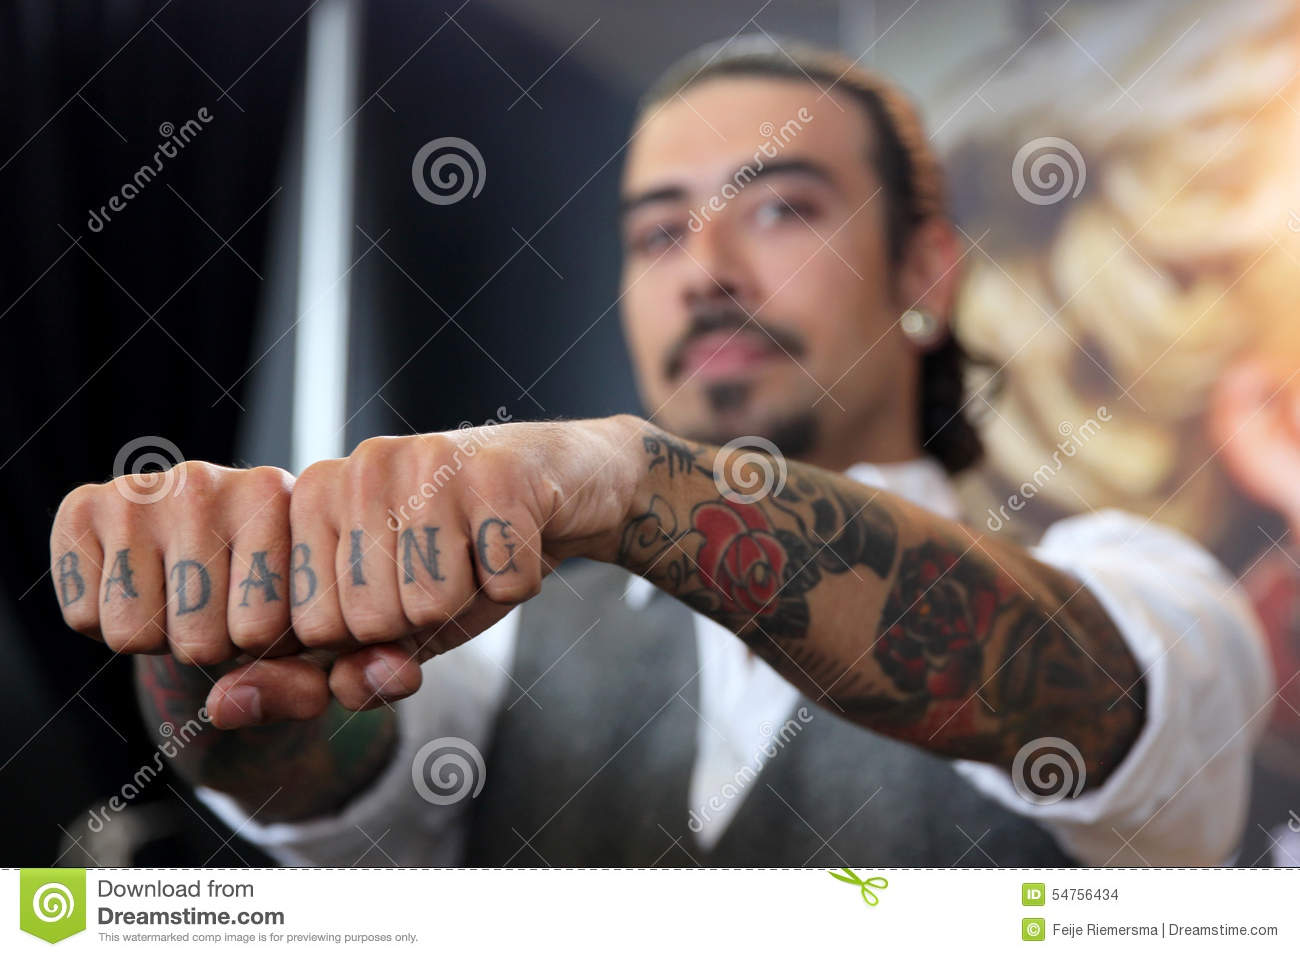 Man with tattoo on fingers editorial stock image. Image of ...